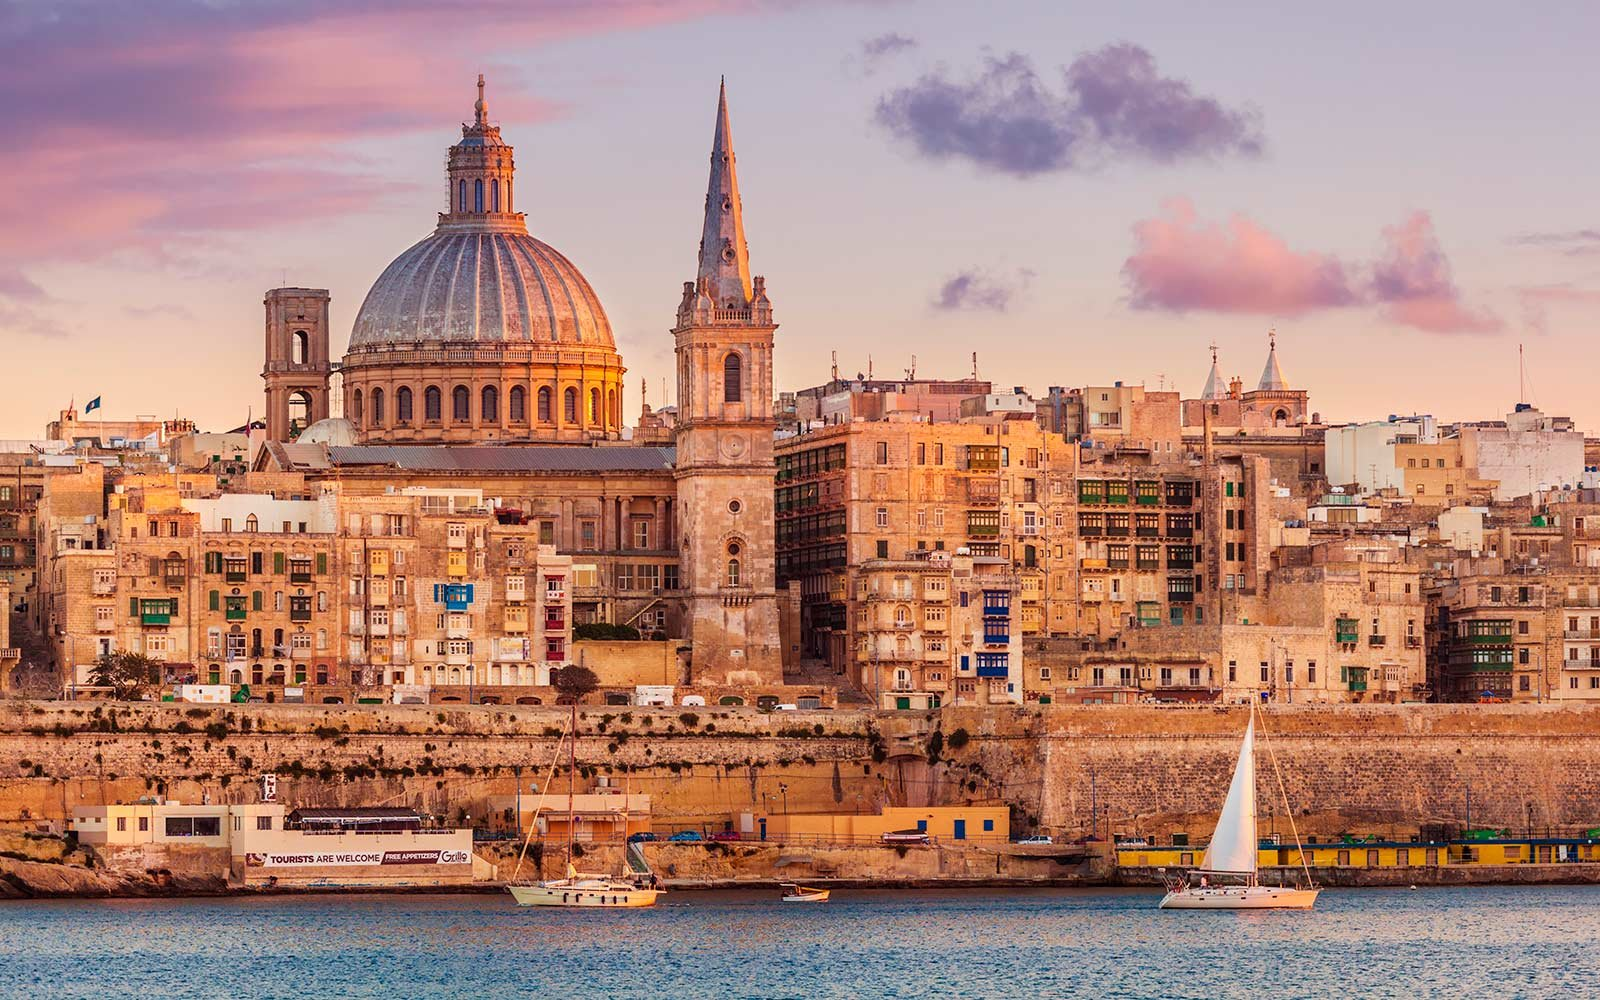 Valletta skyline at sunset with the Carmelite Church dome and St. Pauls Anglican Cathedral, Valletta, Malta, Mediterranean, Europe